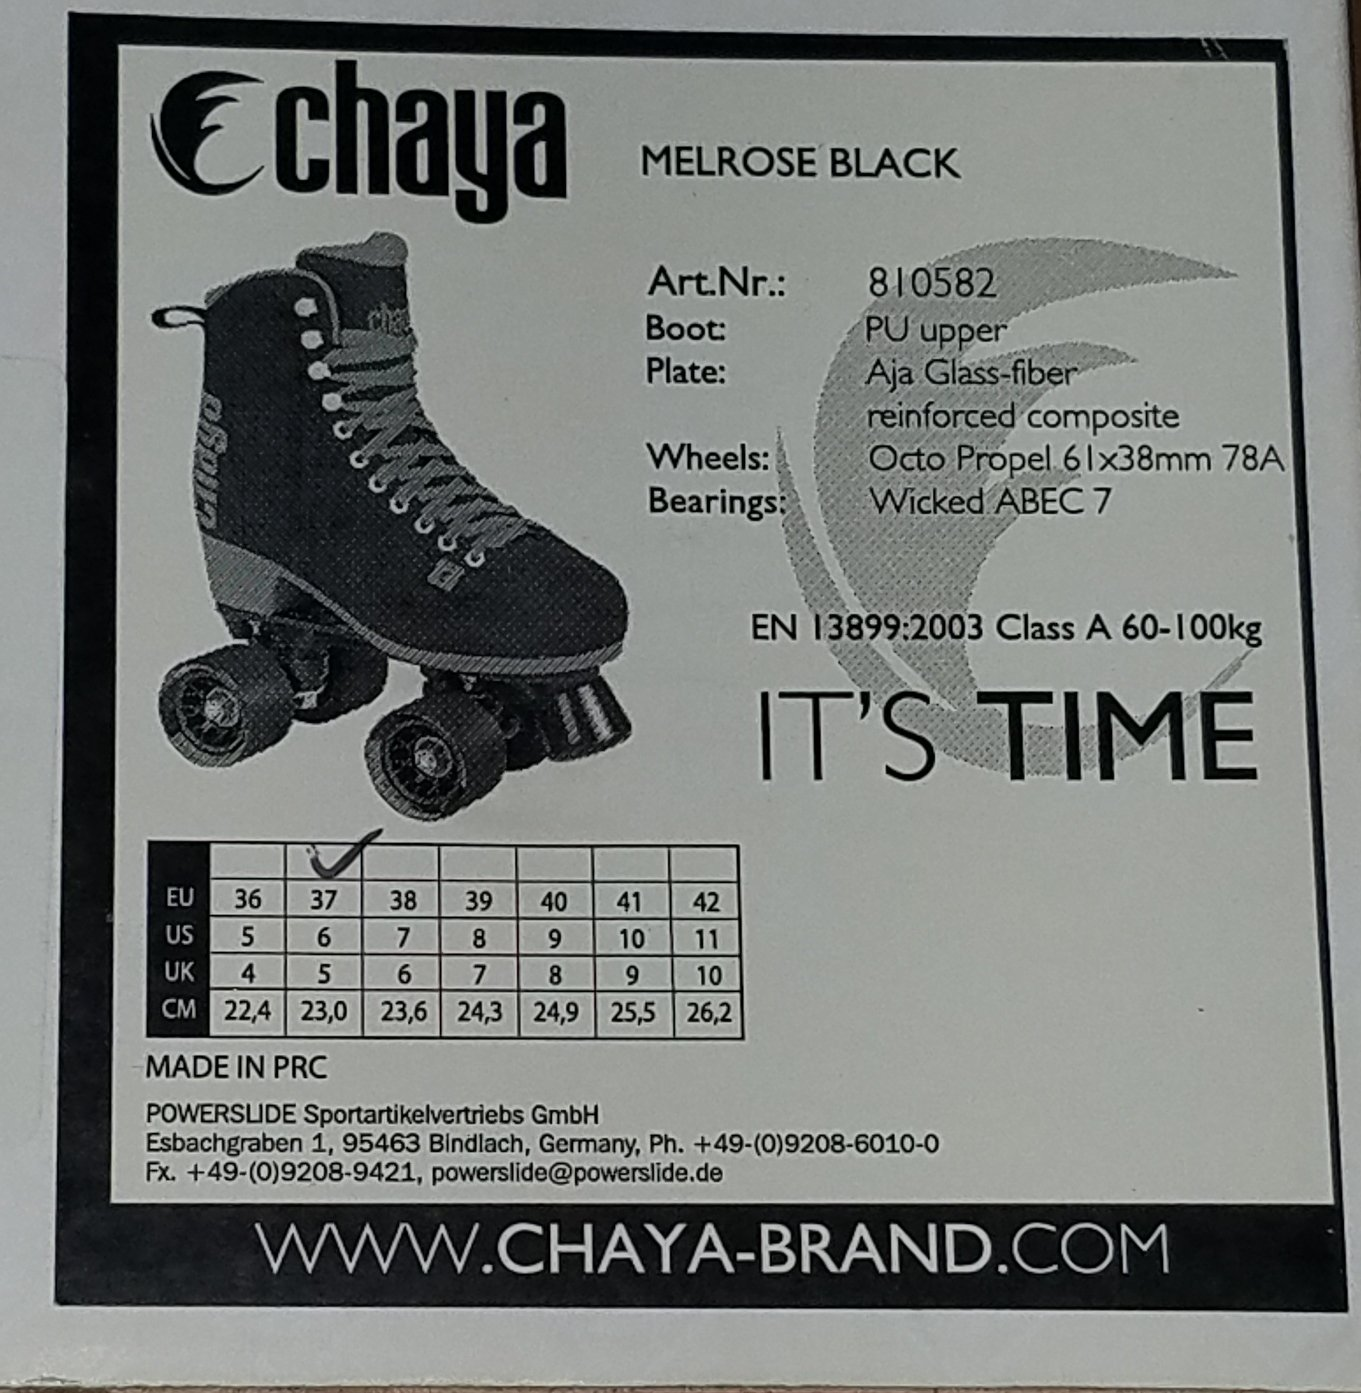 Chaya Melrose Black & Pink Quad Indoor/Outdoor Roller Skates (Euro 40 / US 9) by Chaya (Image #6)